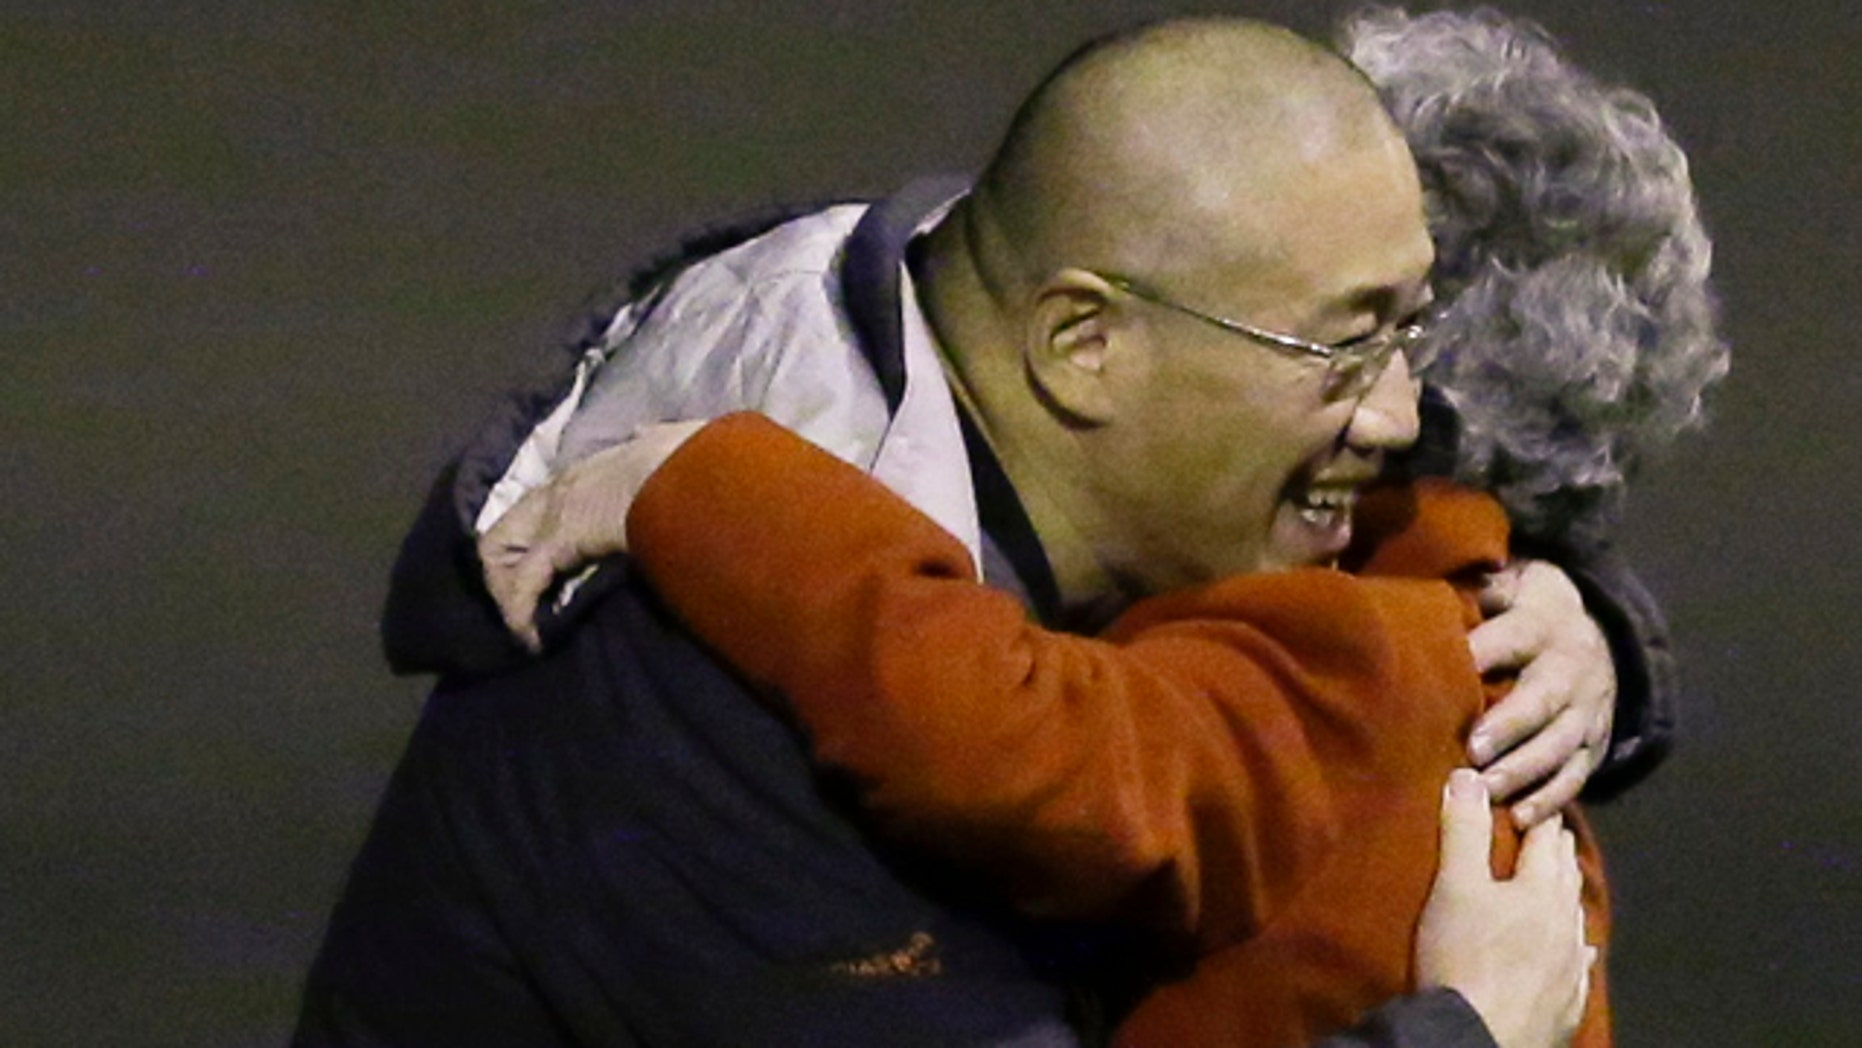 November 8, 2014: Kenneth Bae, left, who had been held in North Korea since 2012, hugs his mother Myunghee Bae after arriving at Joint Base Lewis-McChord, Wash., after being freed during a top-secret mission by James Clapper, U.S. director of national intelligence. (AP Photo/Ted S. Warren)